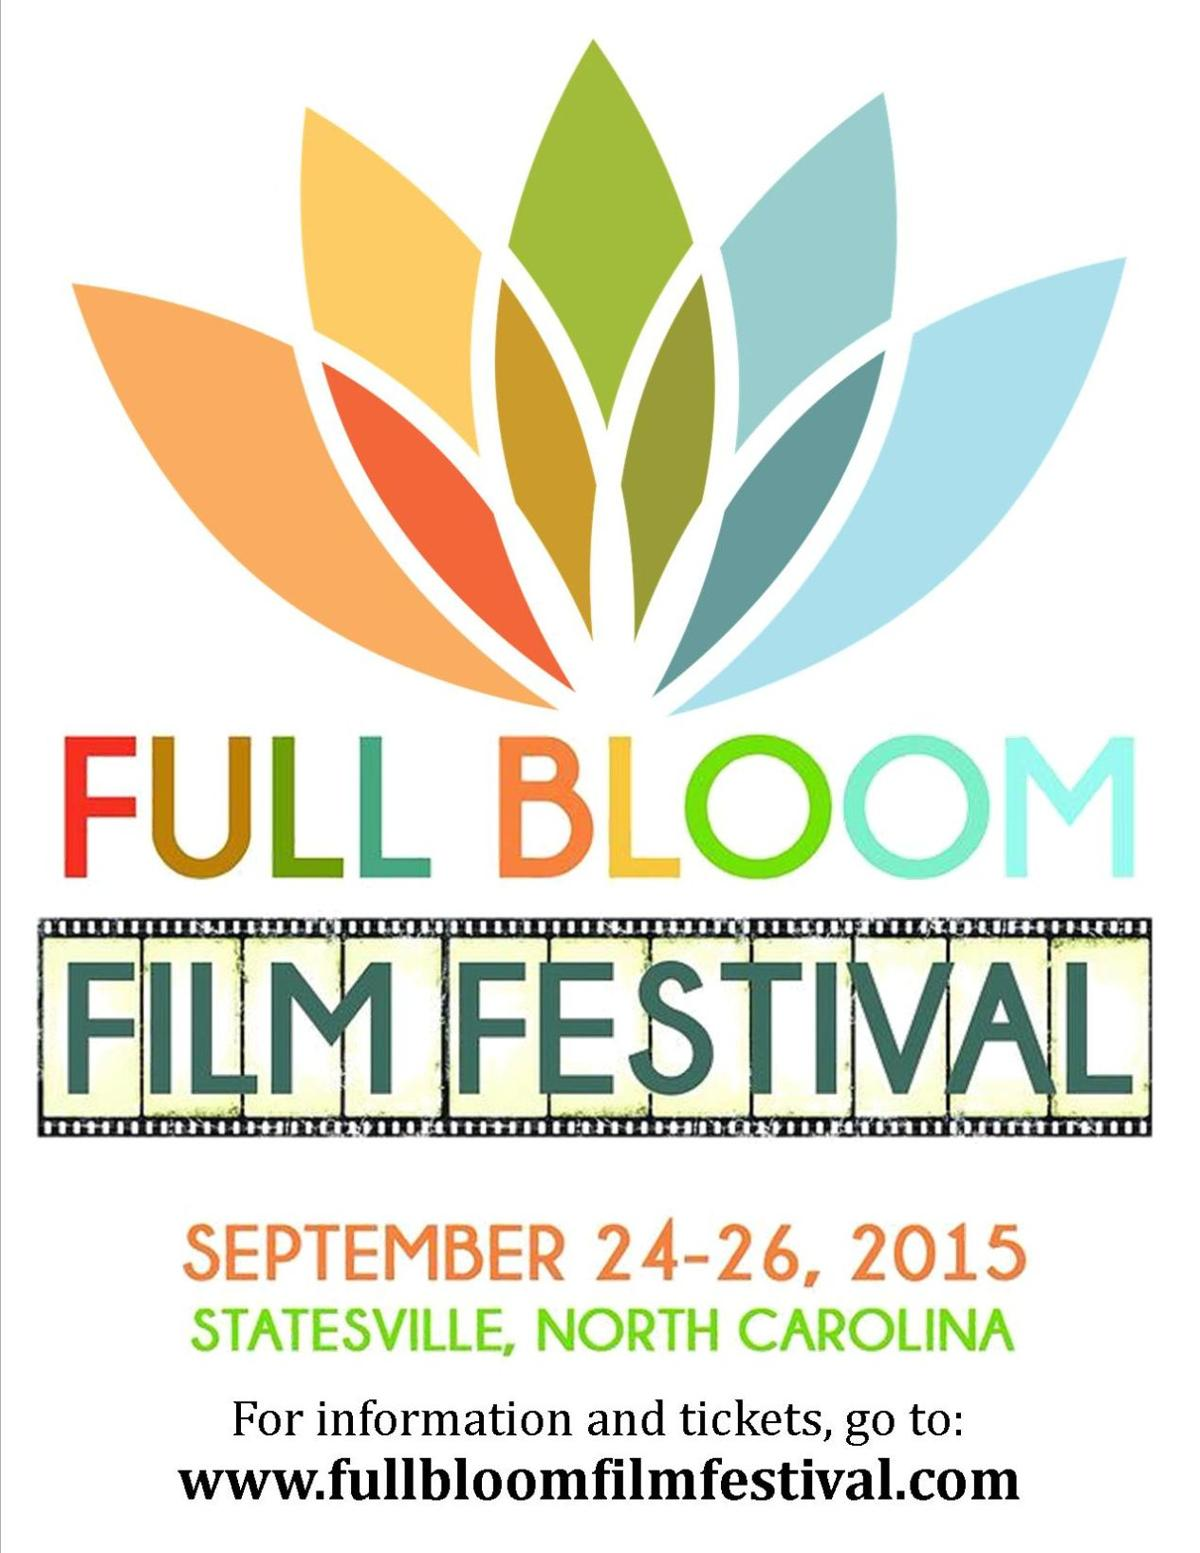 9-24 Full Bloom logo sign.jpg